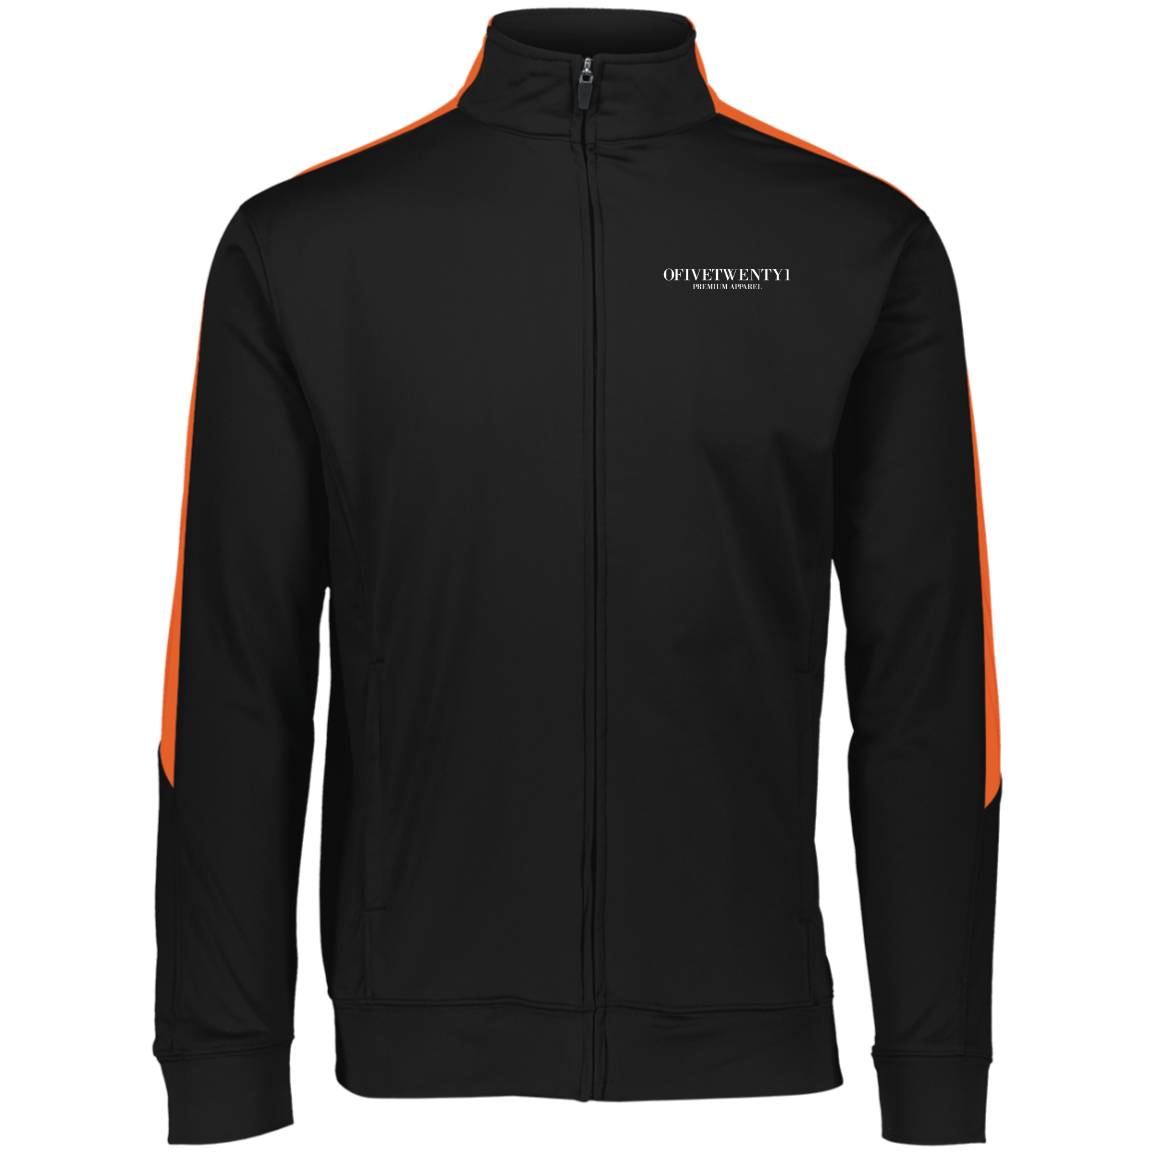 OFiveTwenty1 Performance Colorblock Full Zip